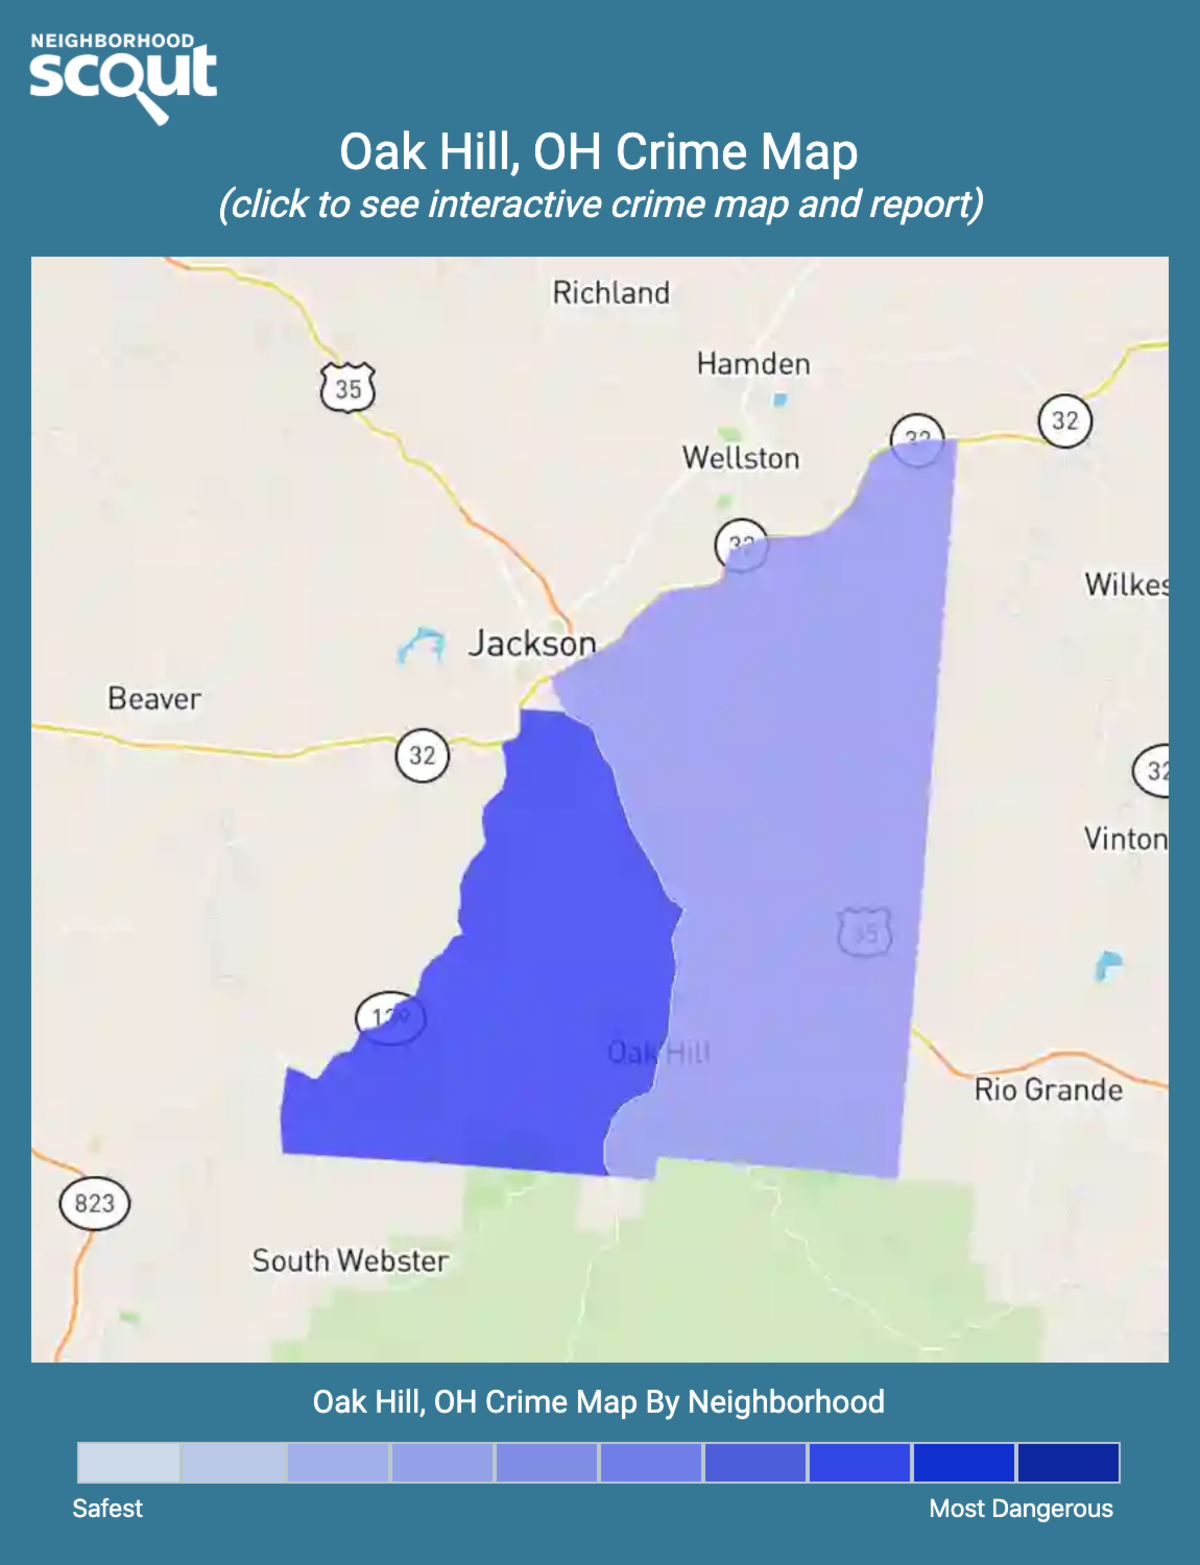 Oak Hill Oh Crime Rates And Statistics Neighborhoodscout